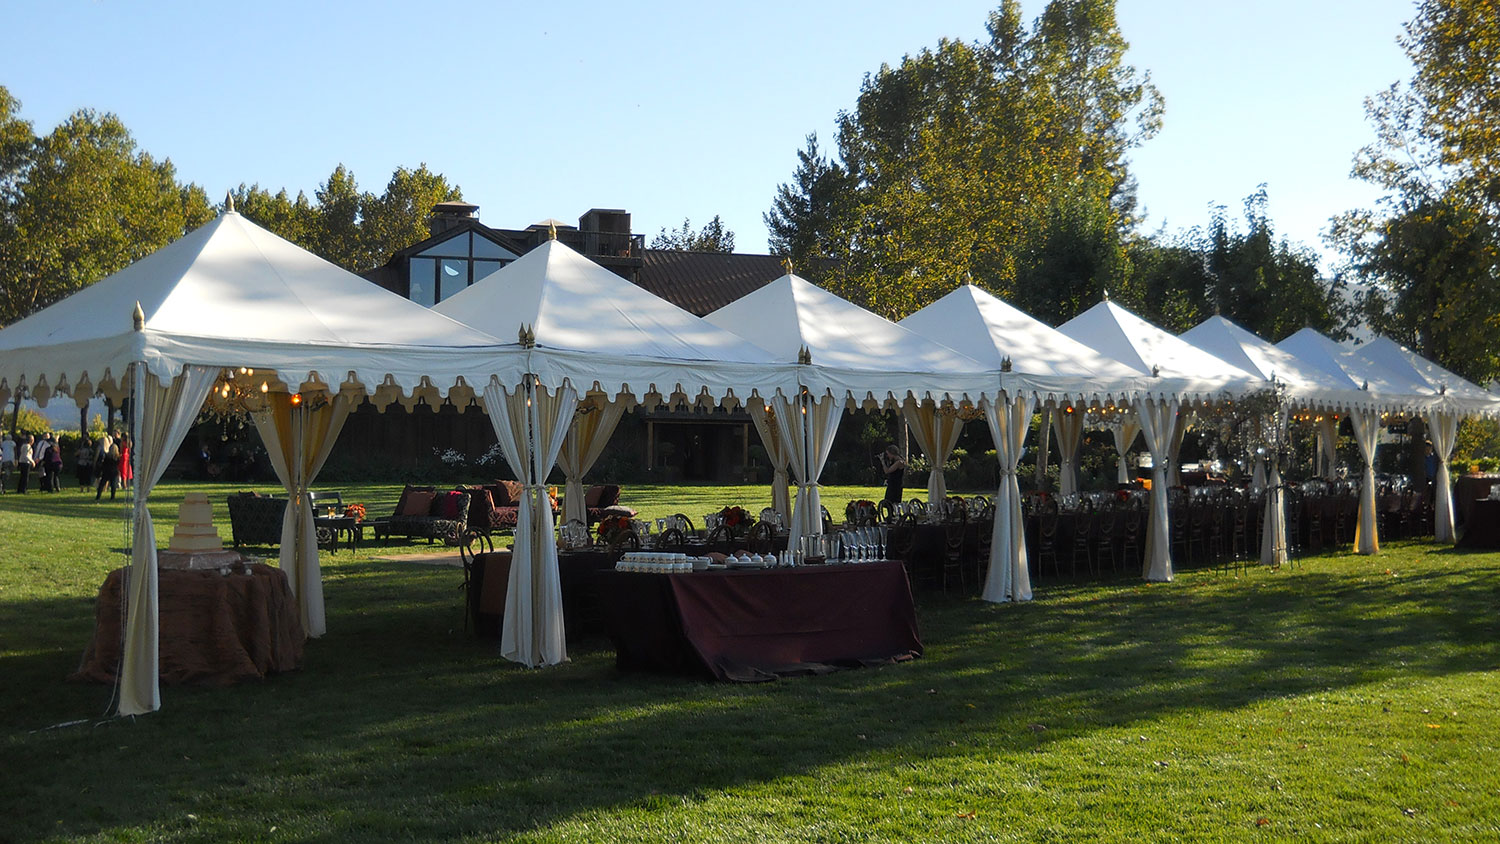 raj-tents-classic-wedding-pergola-row.jpg